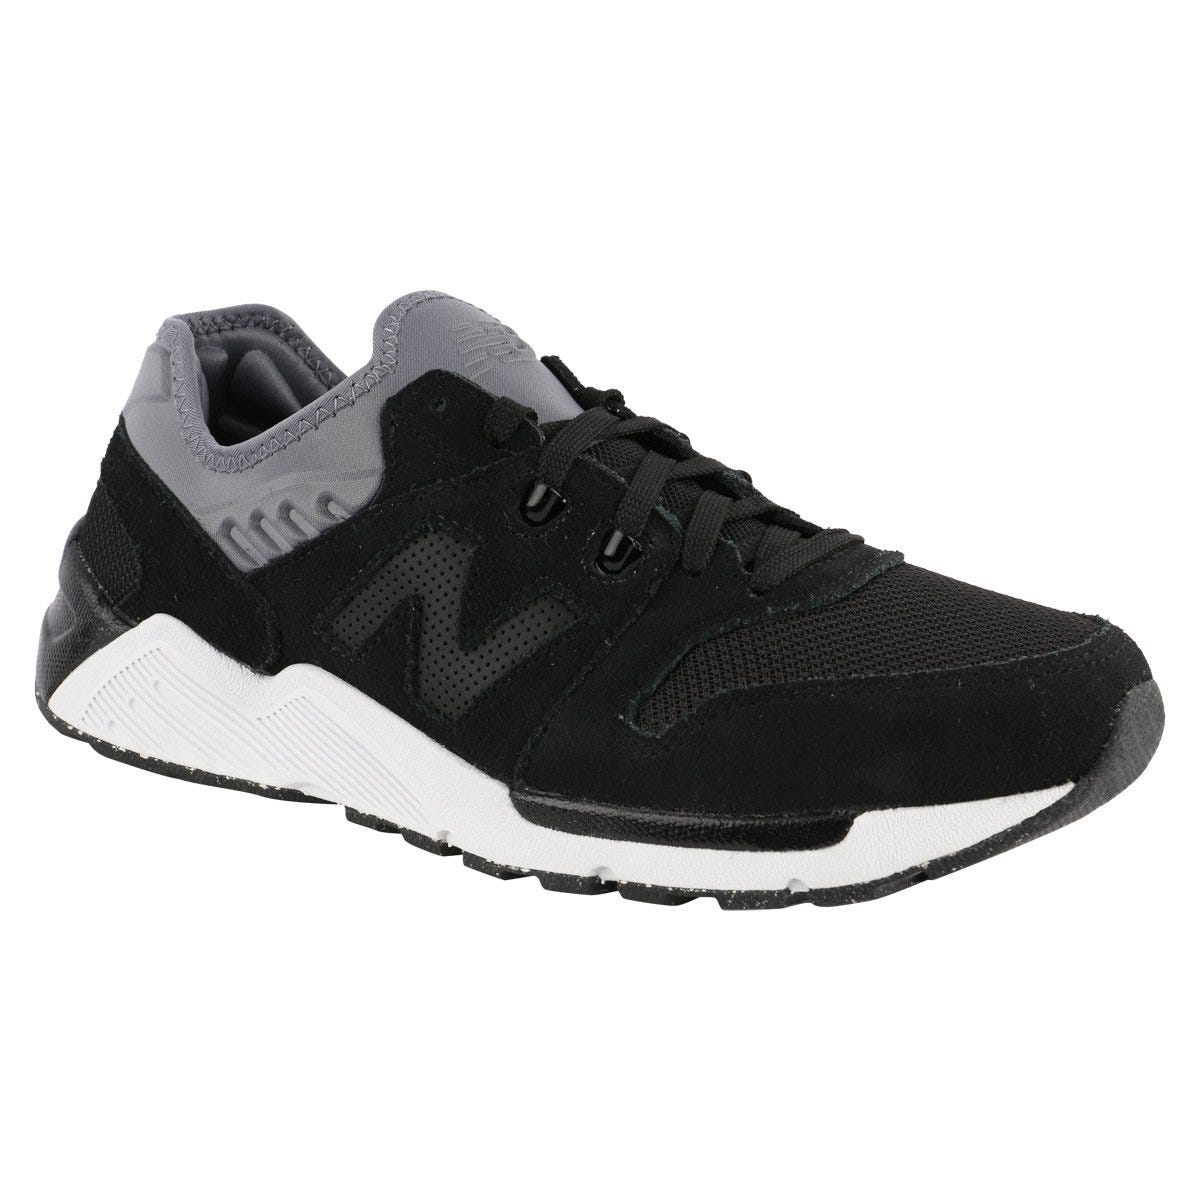 New Balance Lifestyle Hero Collection Mens Shoes